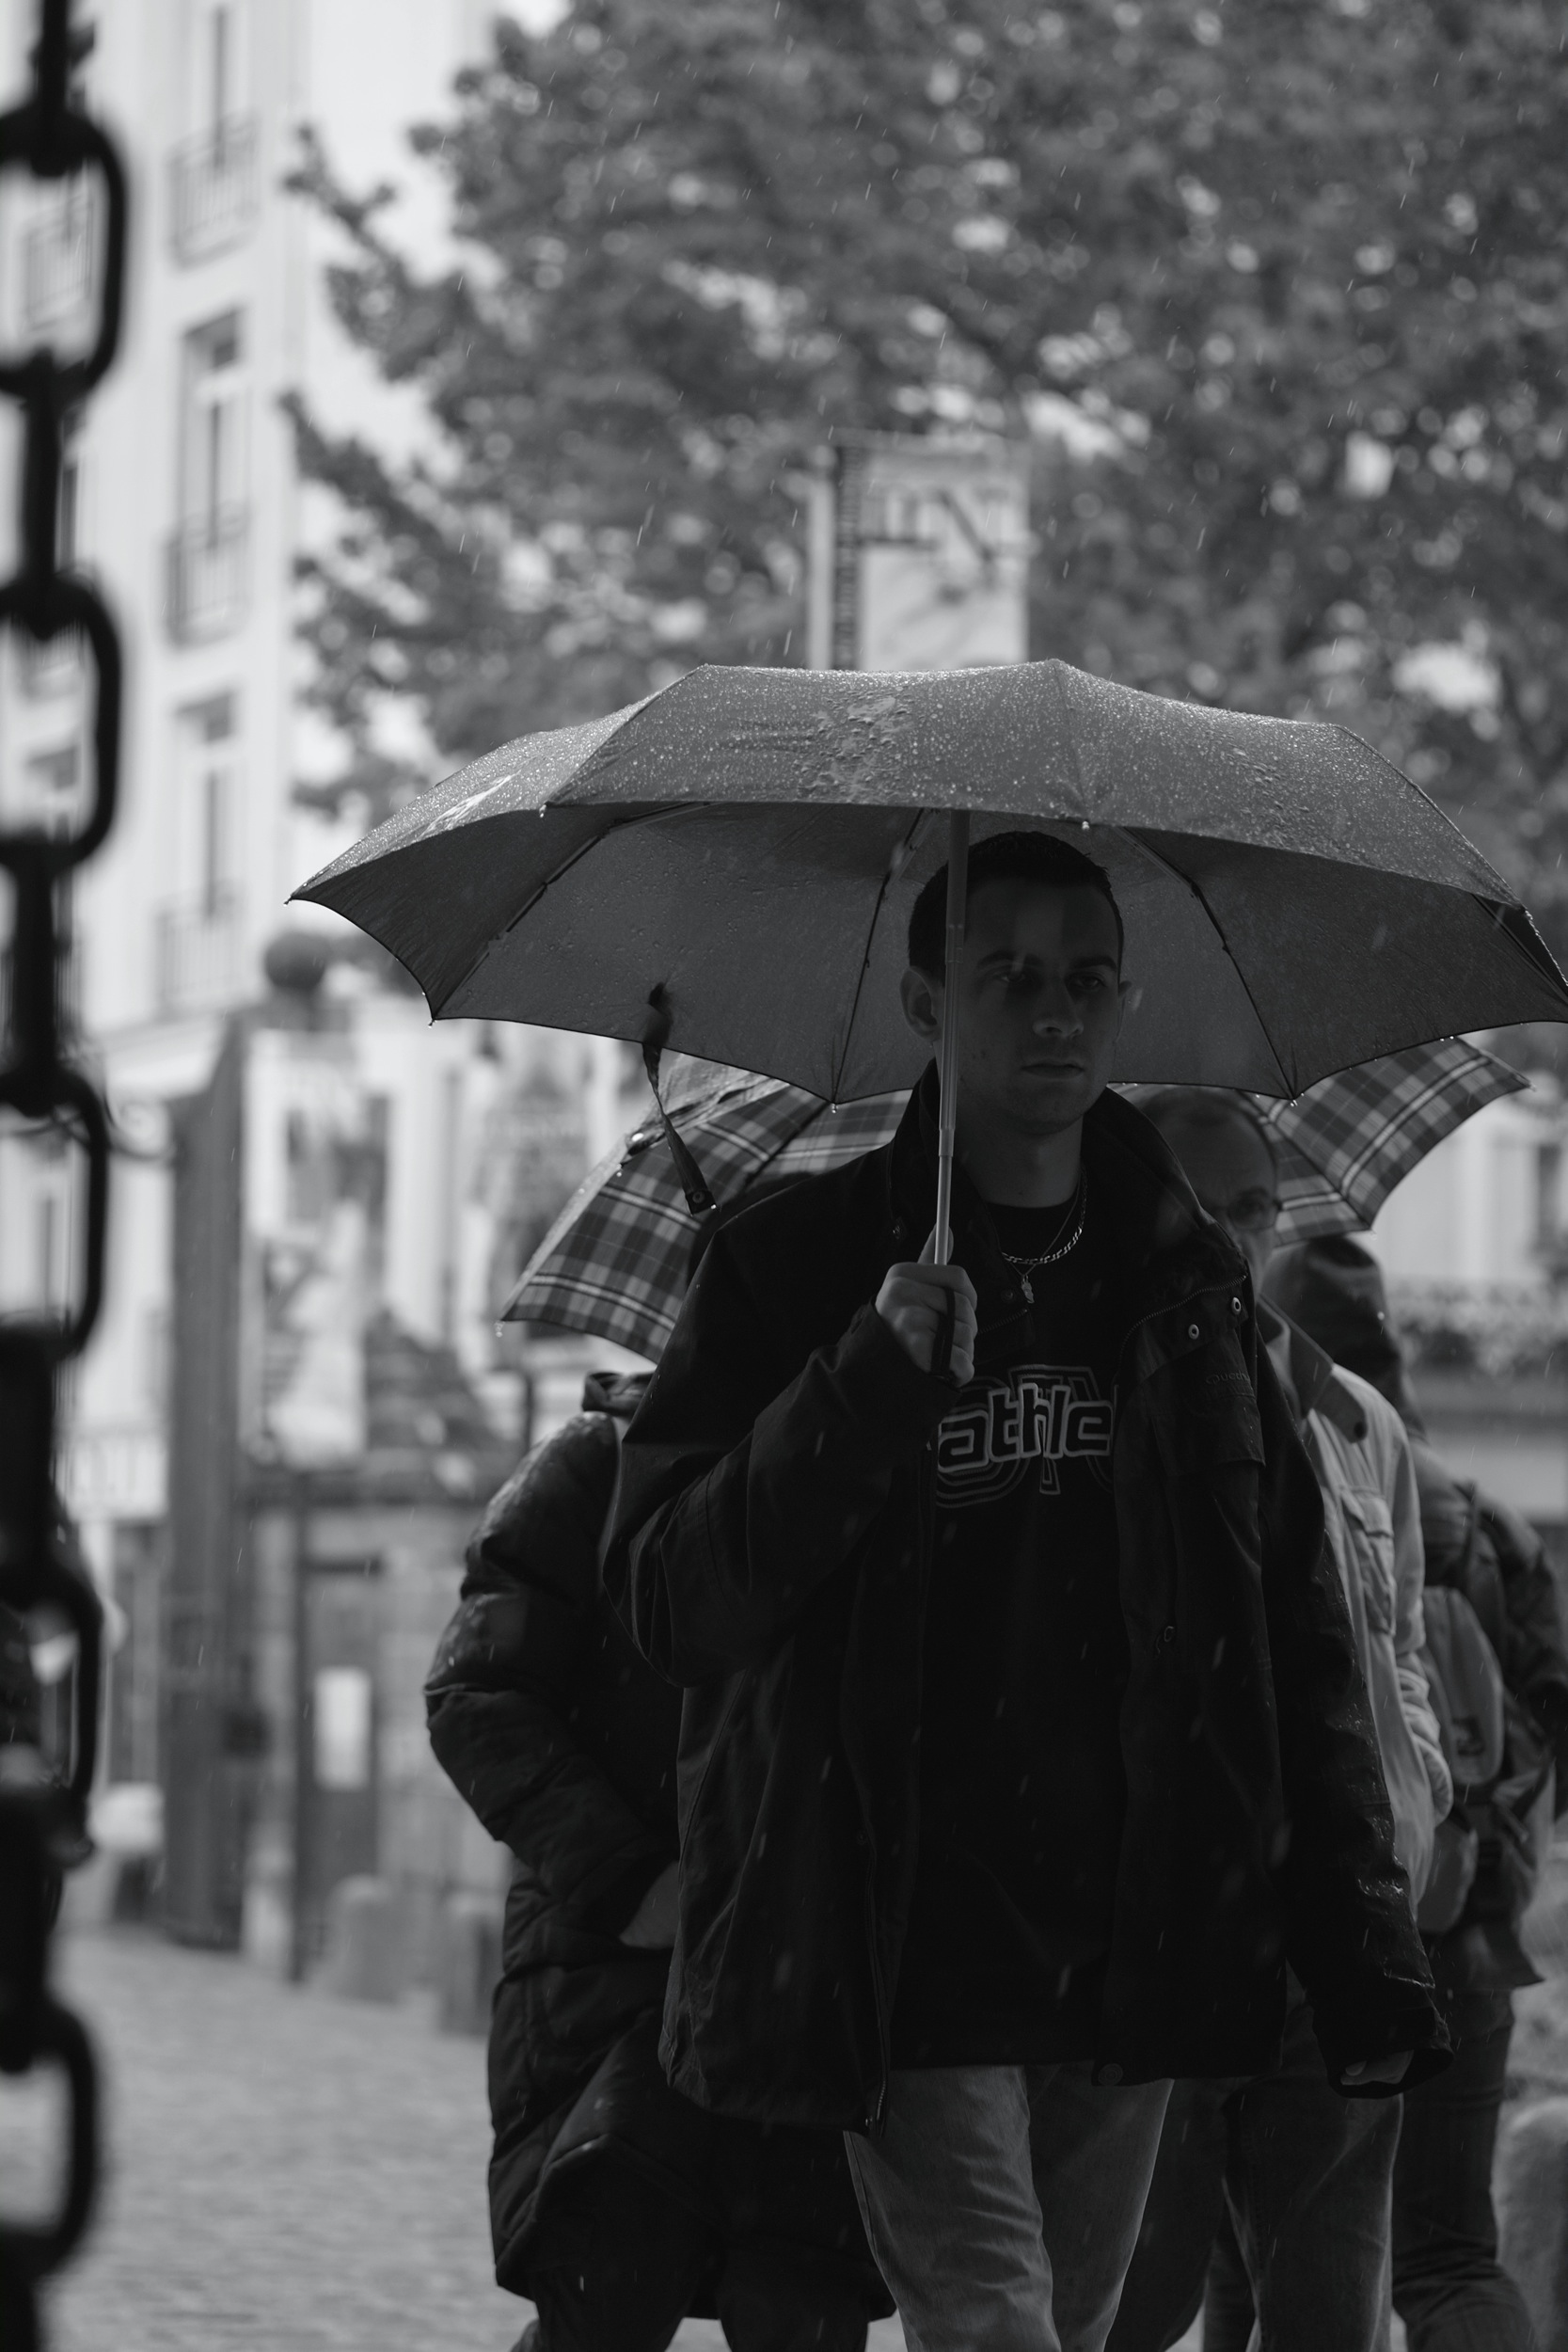 Man walking with umbrella in Nantes - Fuji X-Pro1